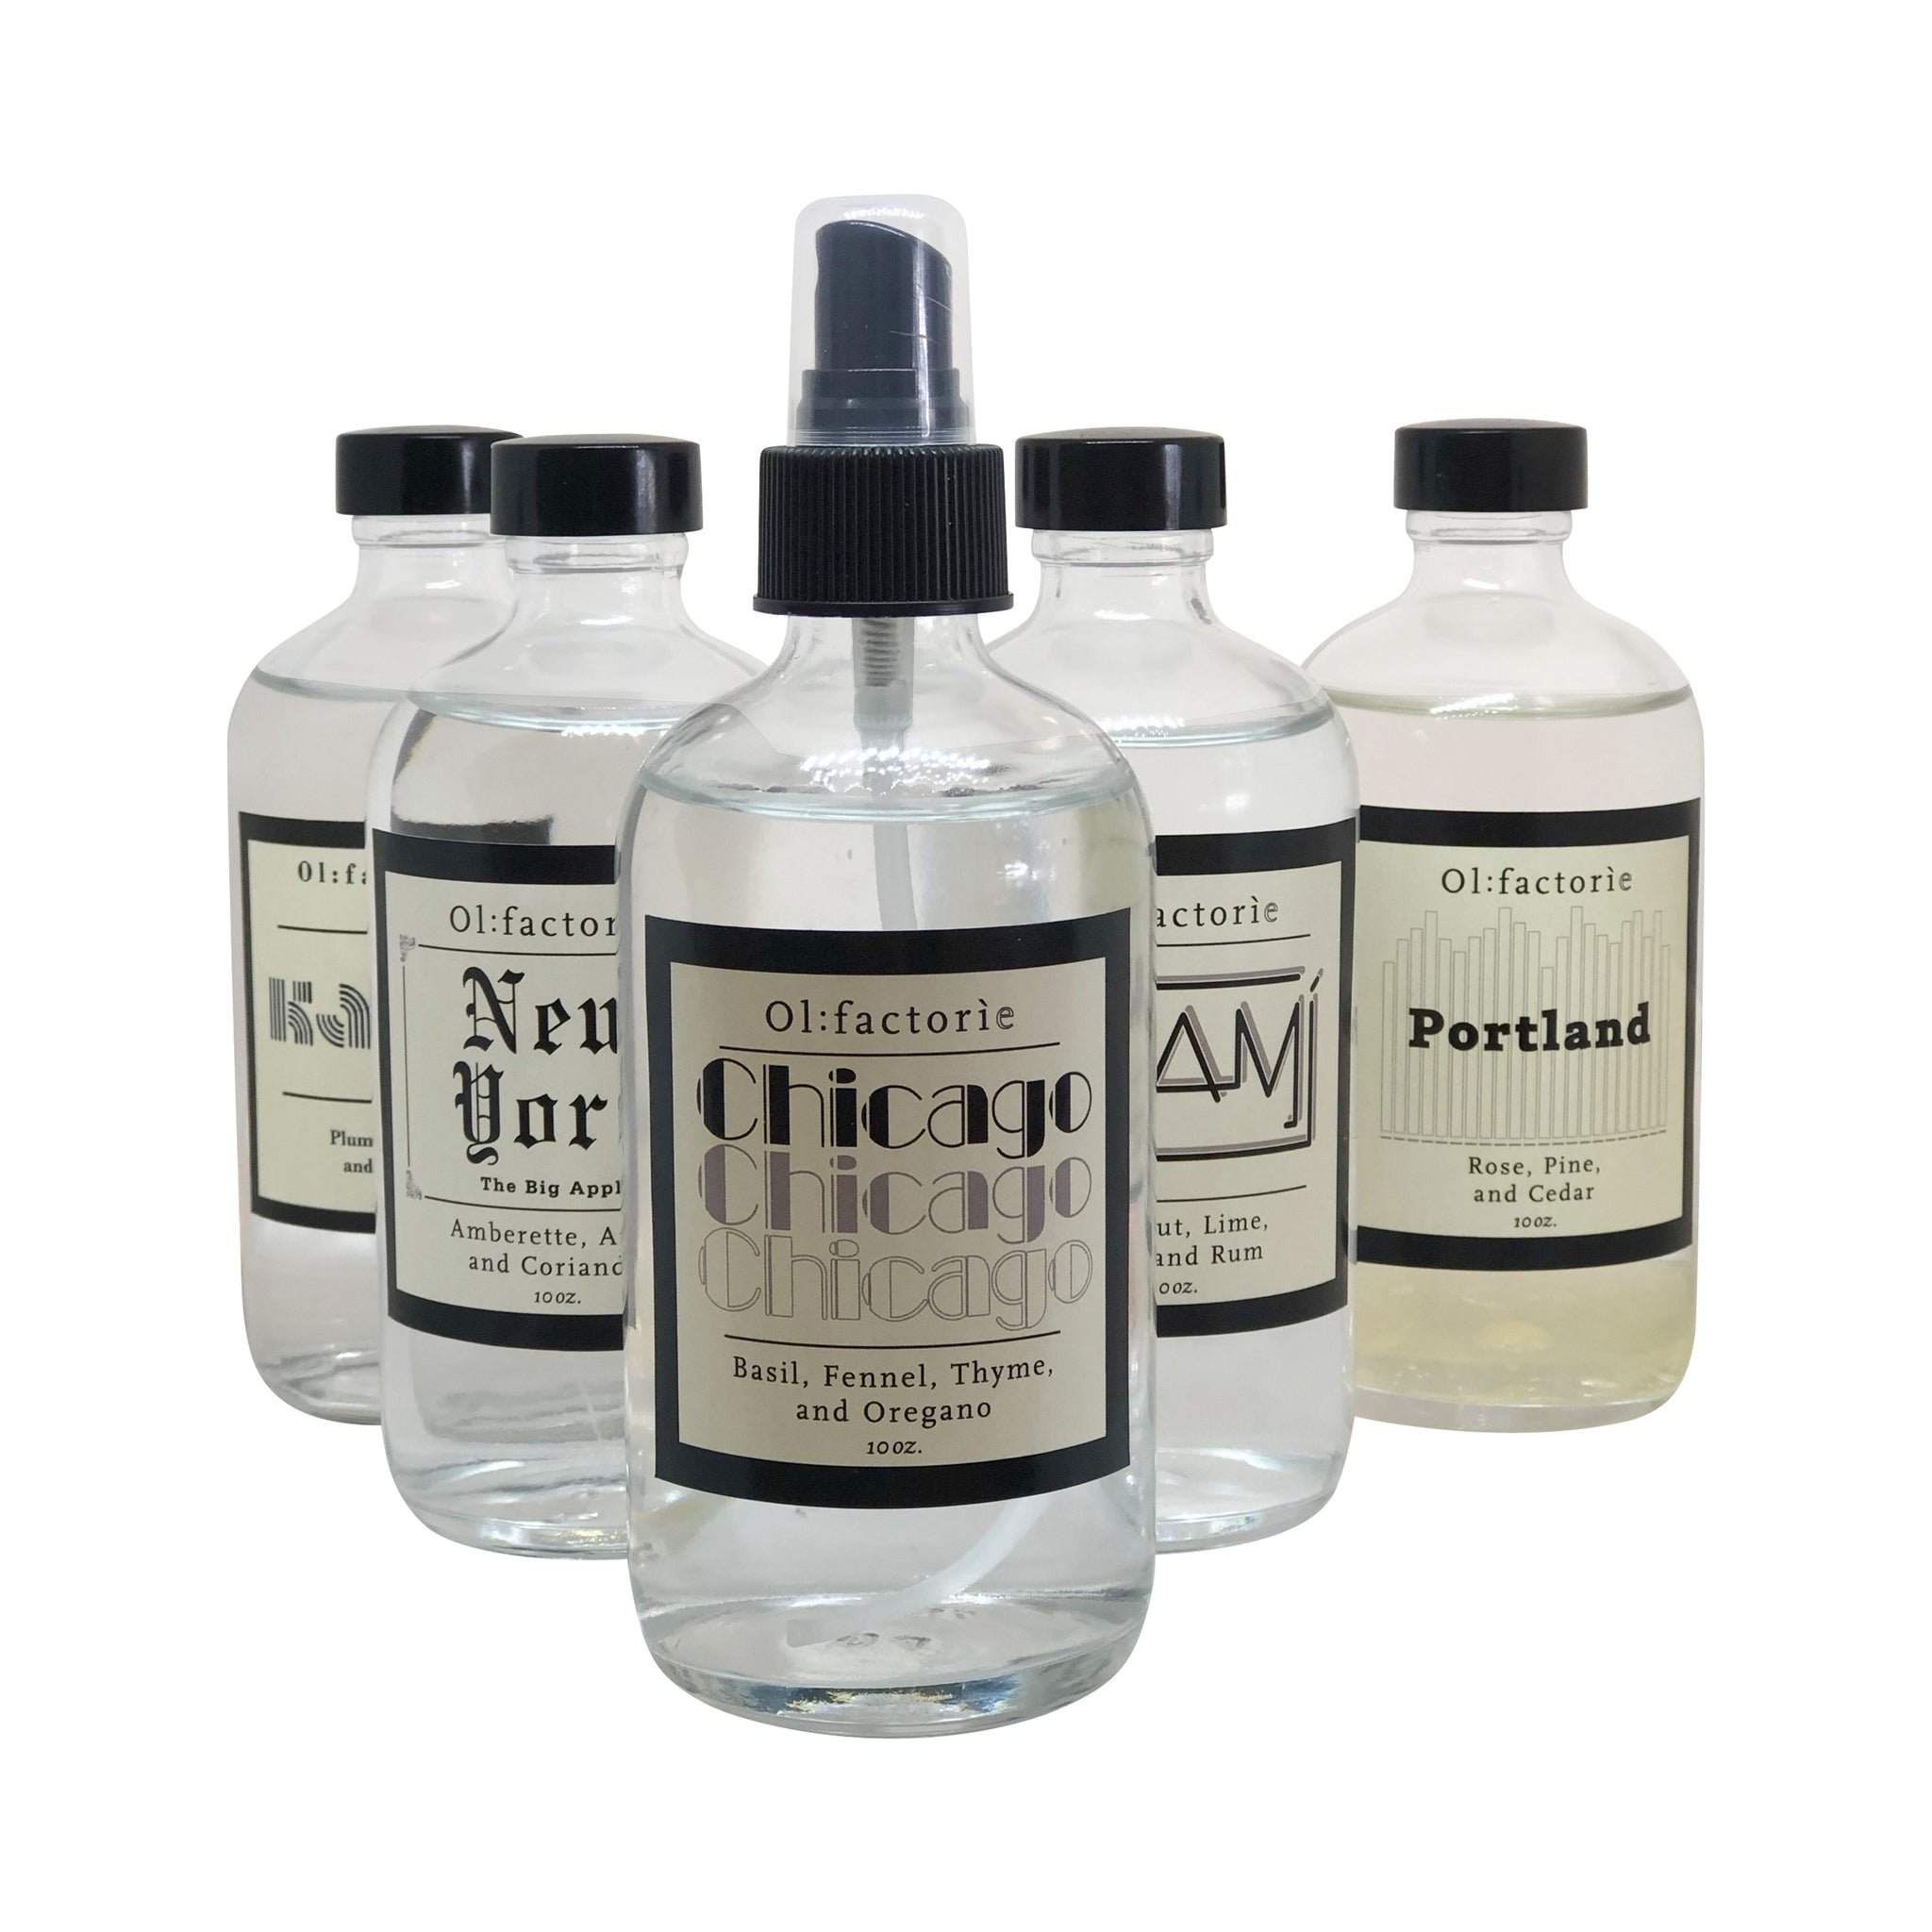 Portland Travel Mist - Olfactorie Candles